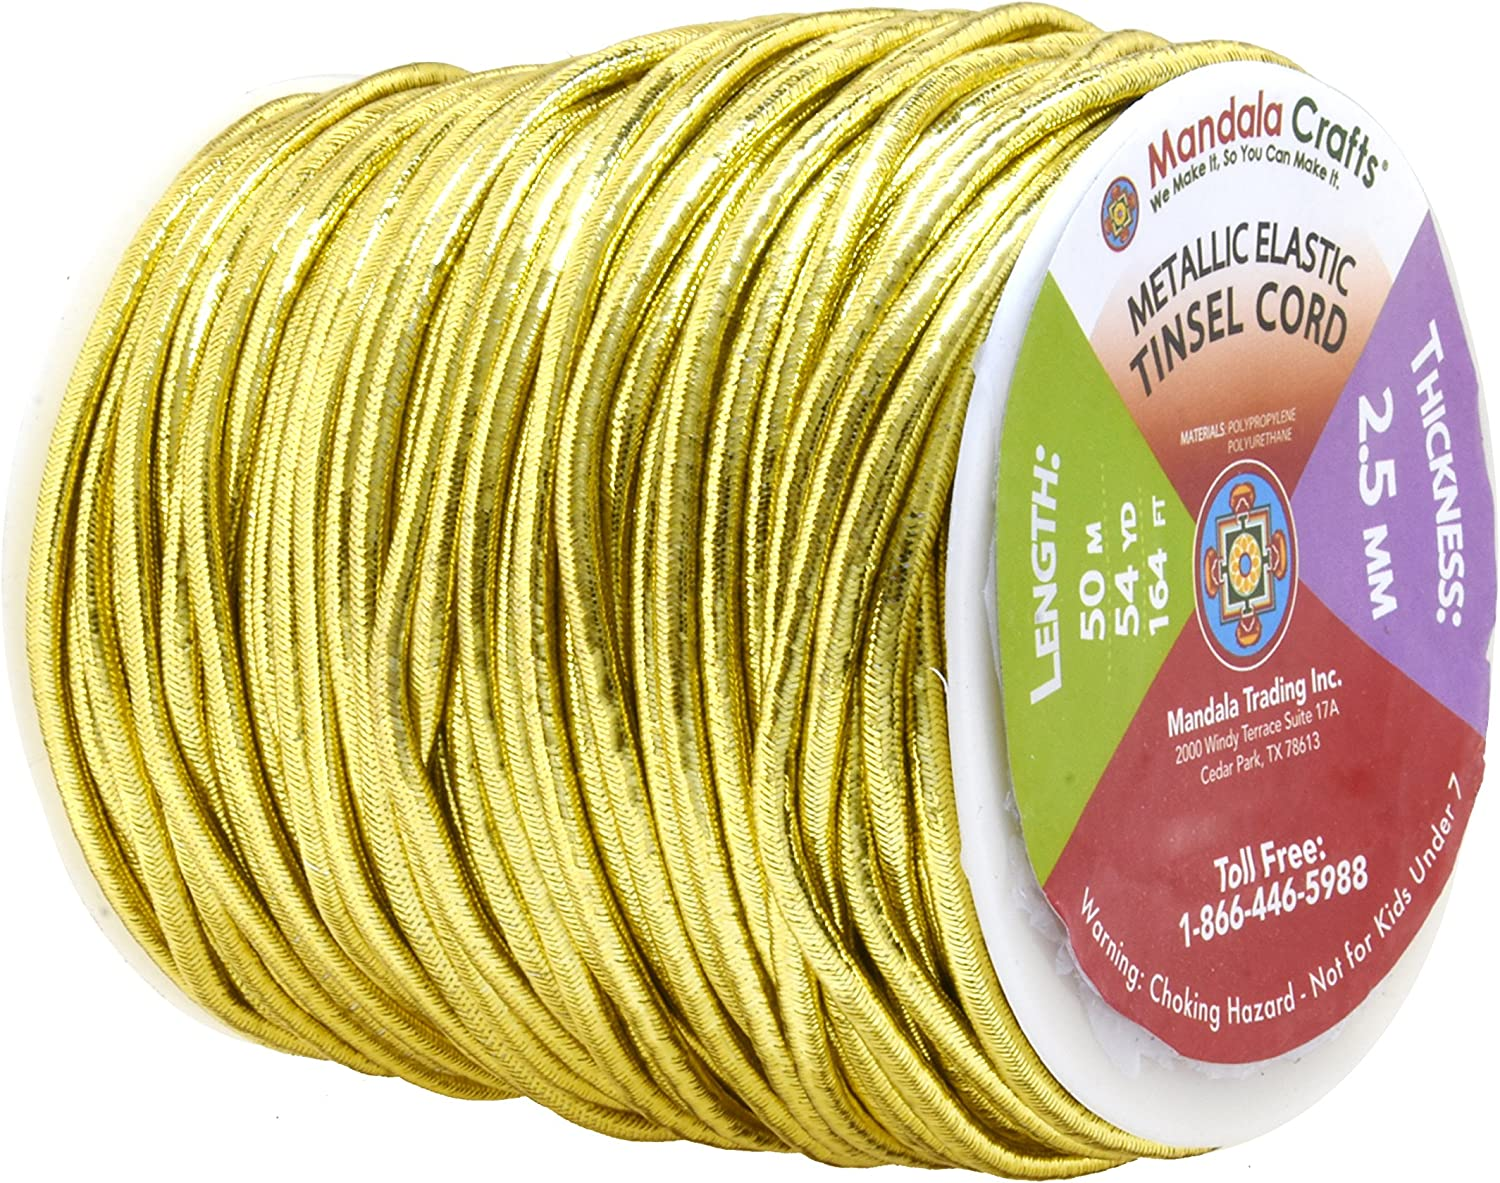 Gold Crafting; Non Elastic 1mm 120 Yards Mandala Crafts Metallic Cord Tinsel String Rope for Ornament Hanging Gift Wrapping Decorating